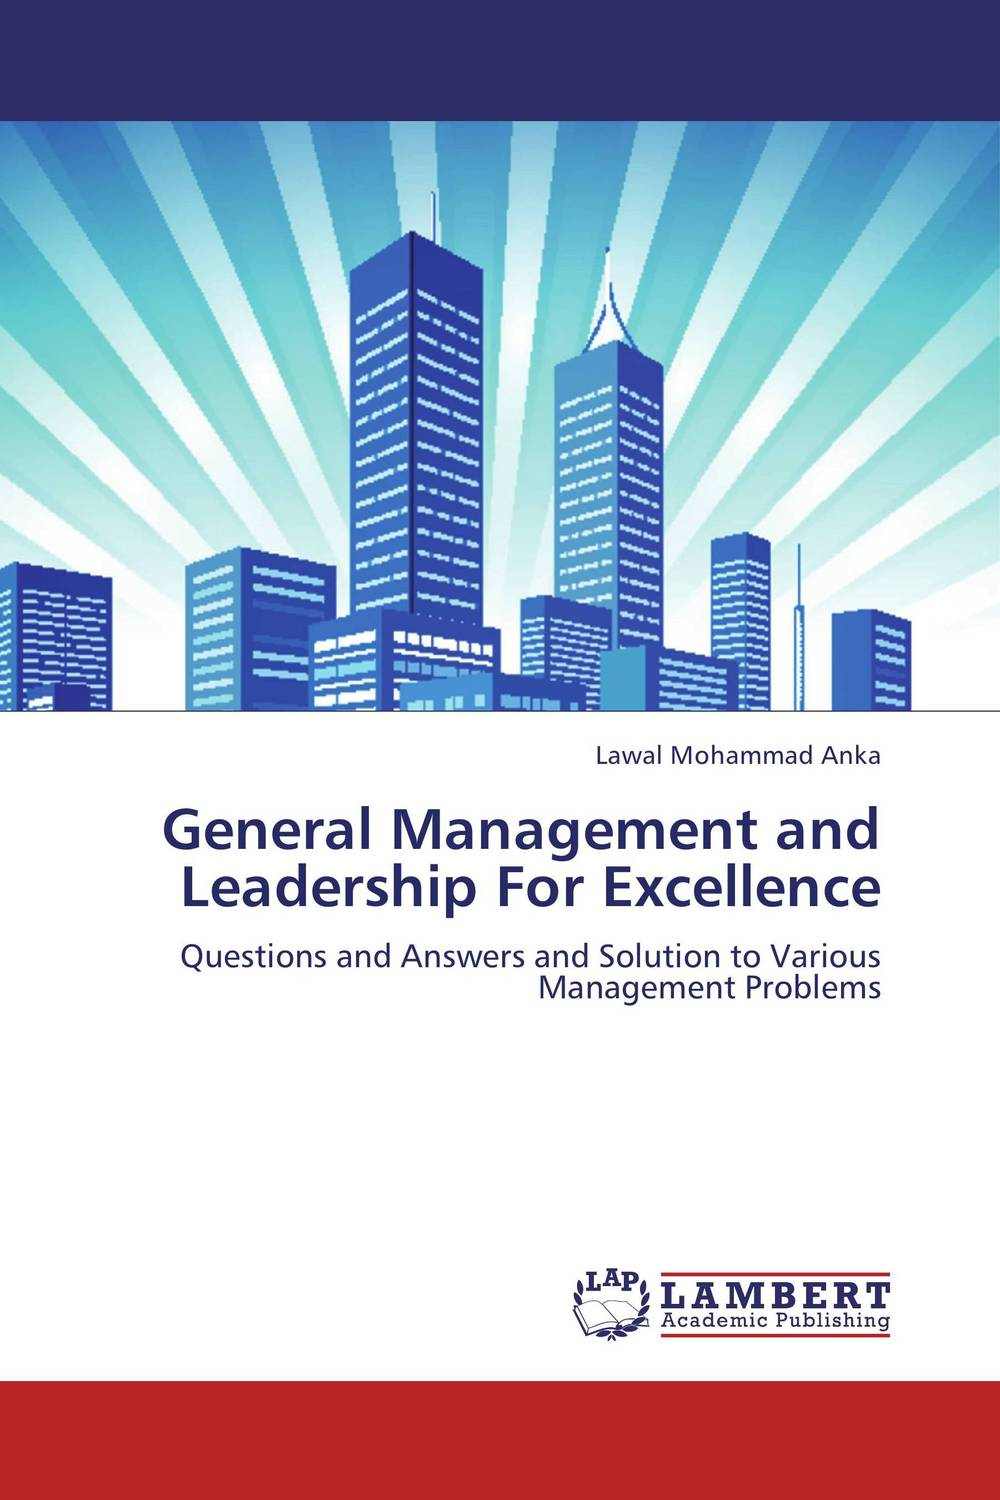 General Management and Leadership For Excellence dr irrenpreet singh sanghotra dr prem kumar and dr paramjeet kaur dhindsa quality management practices and organisational performance